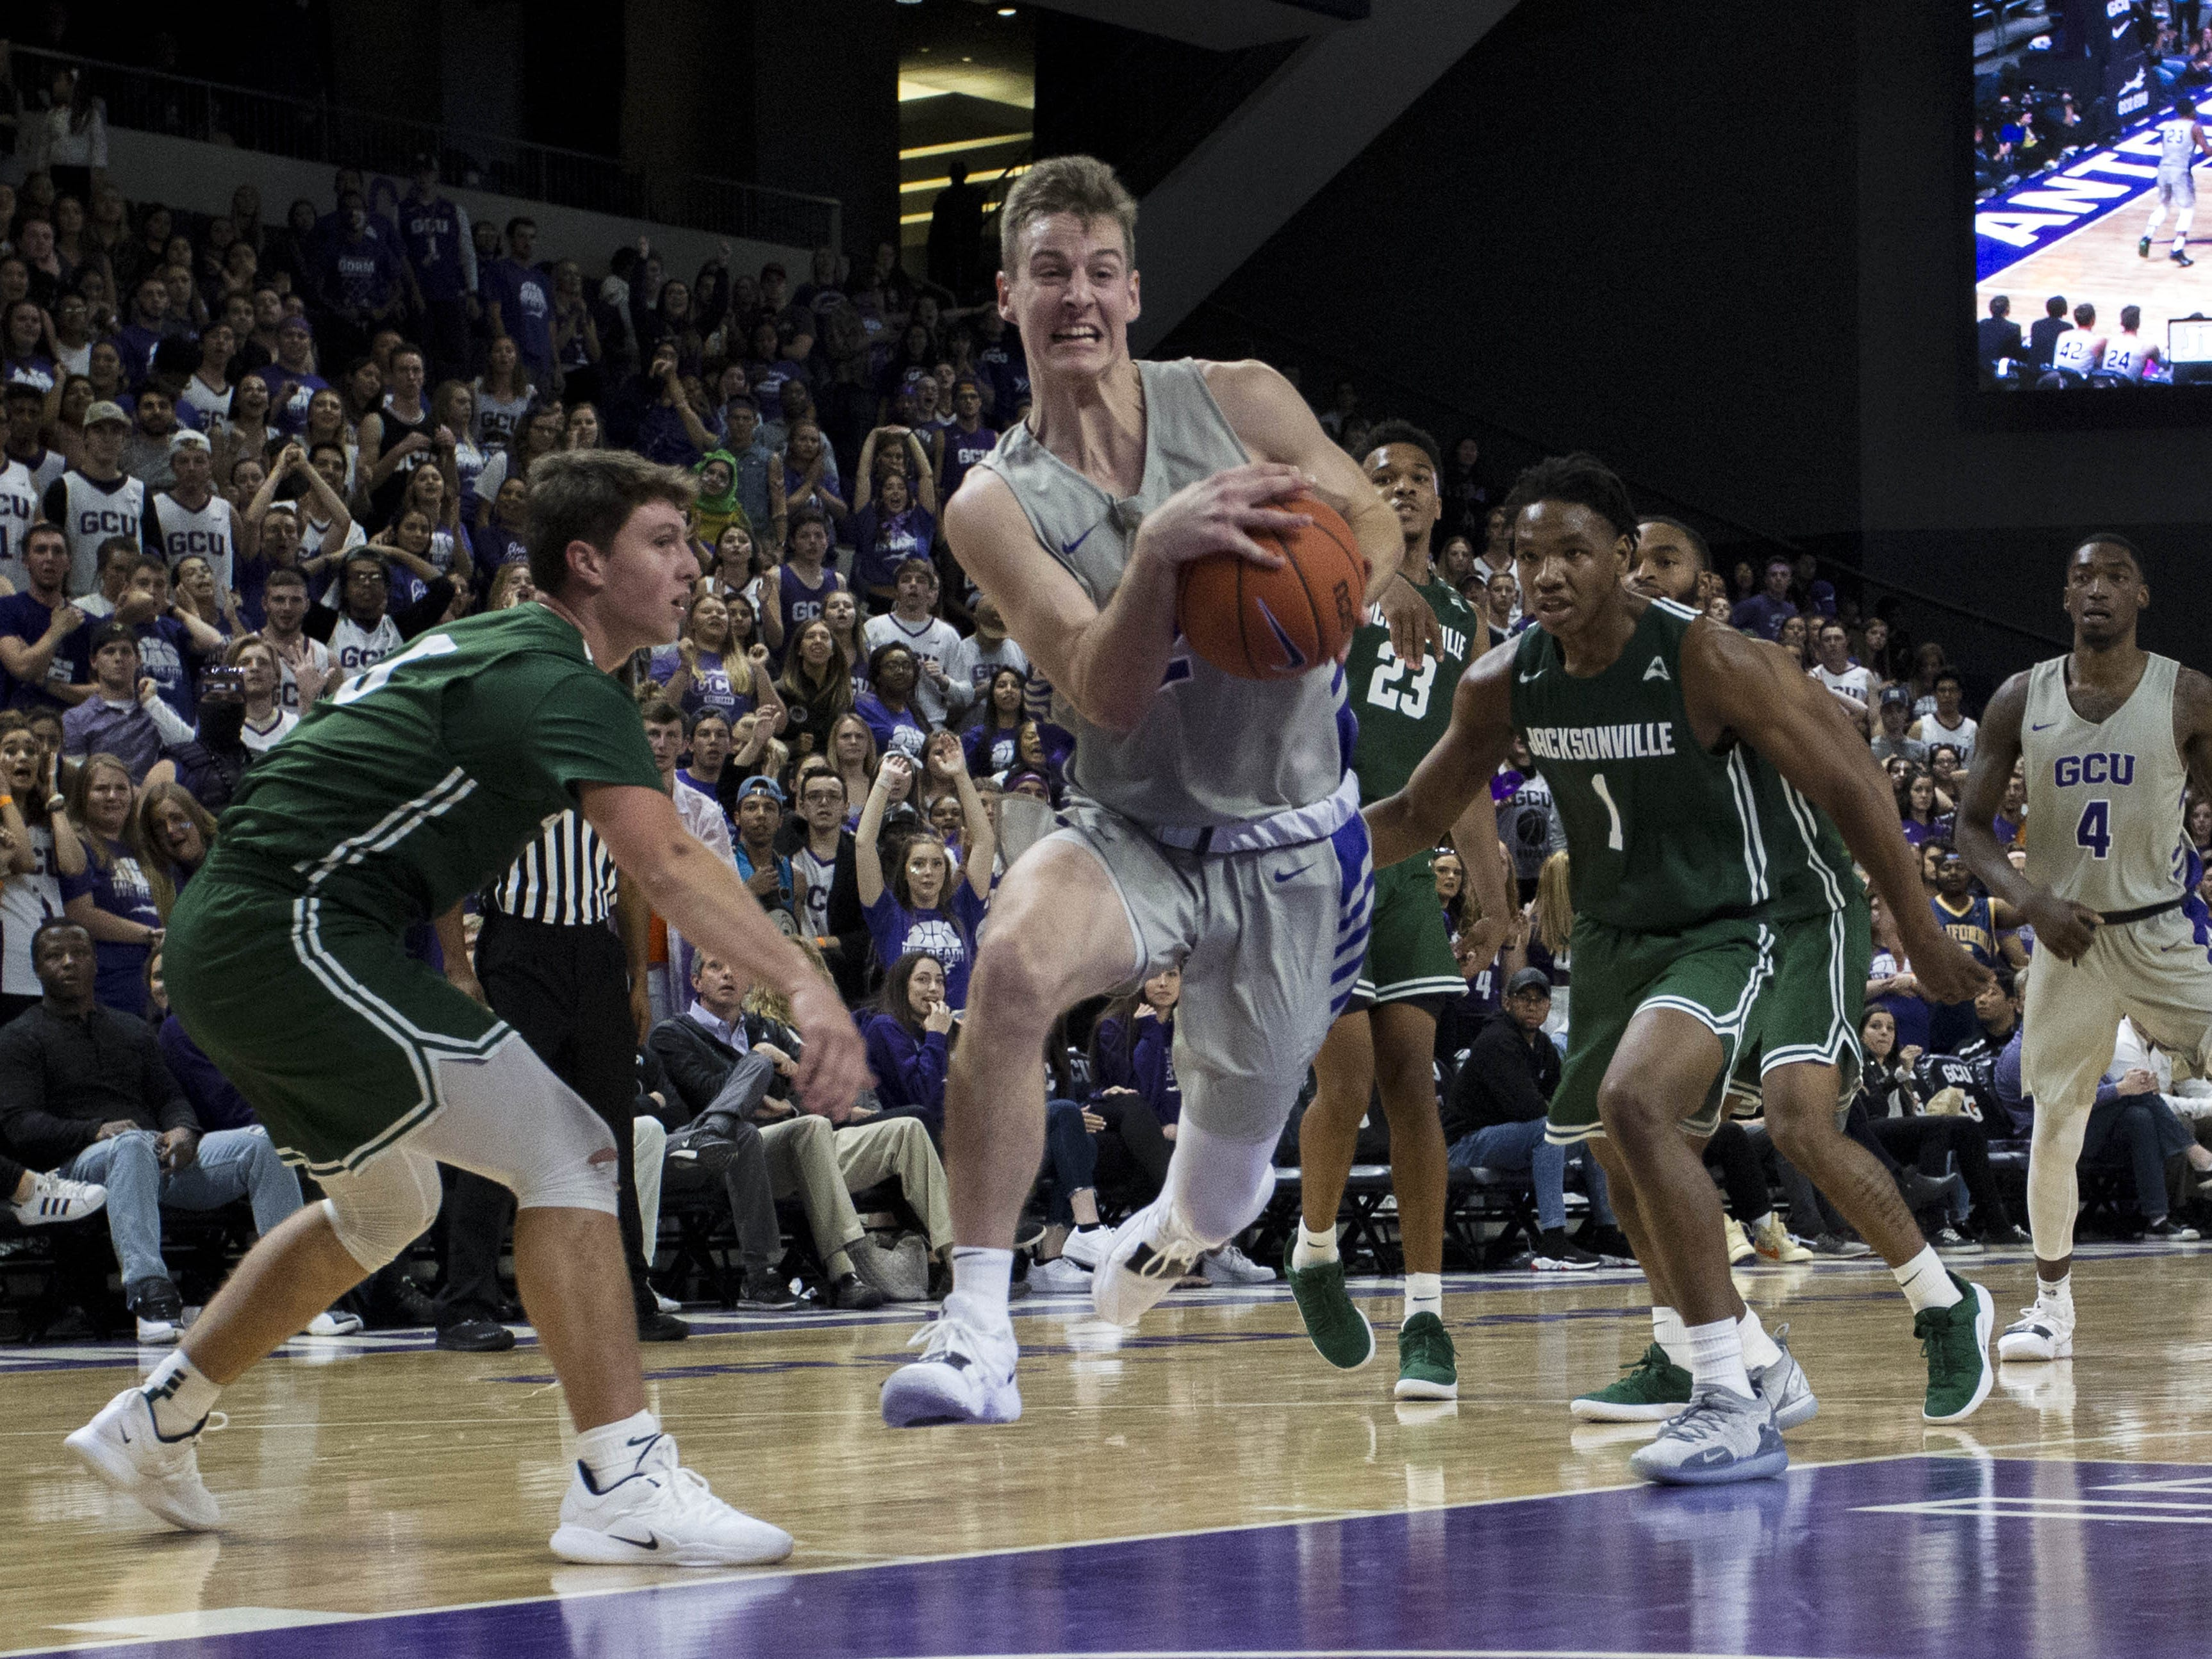 Grand Canyon University's Trey Drechsel takes it to the basket against Jacksonville the second half of their game in Phoenix, Monday, Nov.11,  2018.